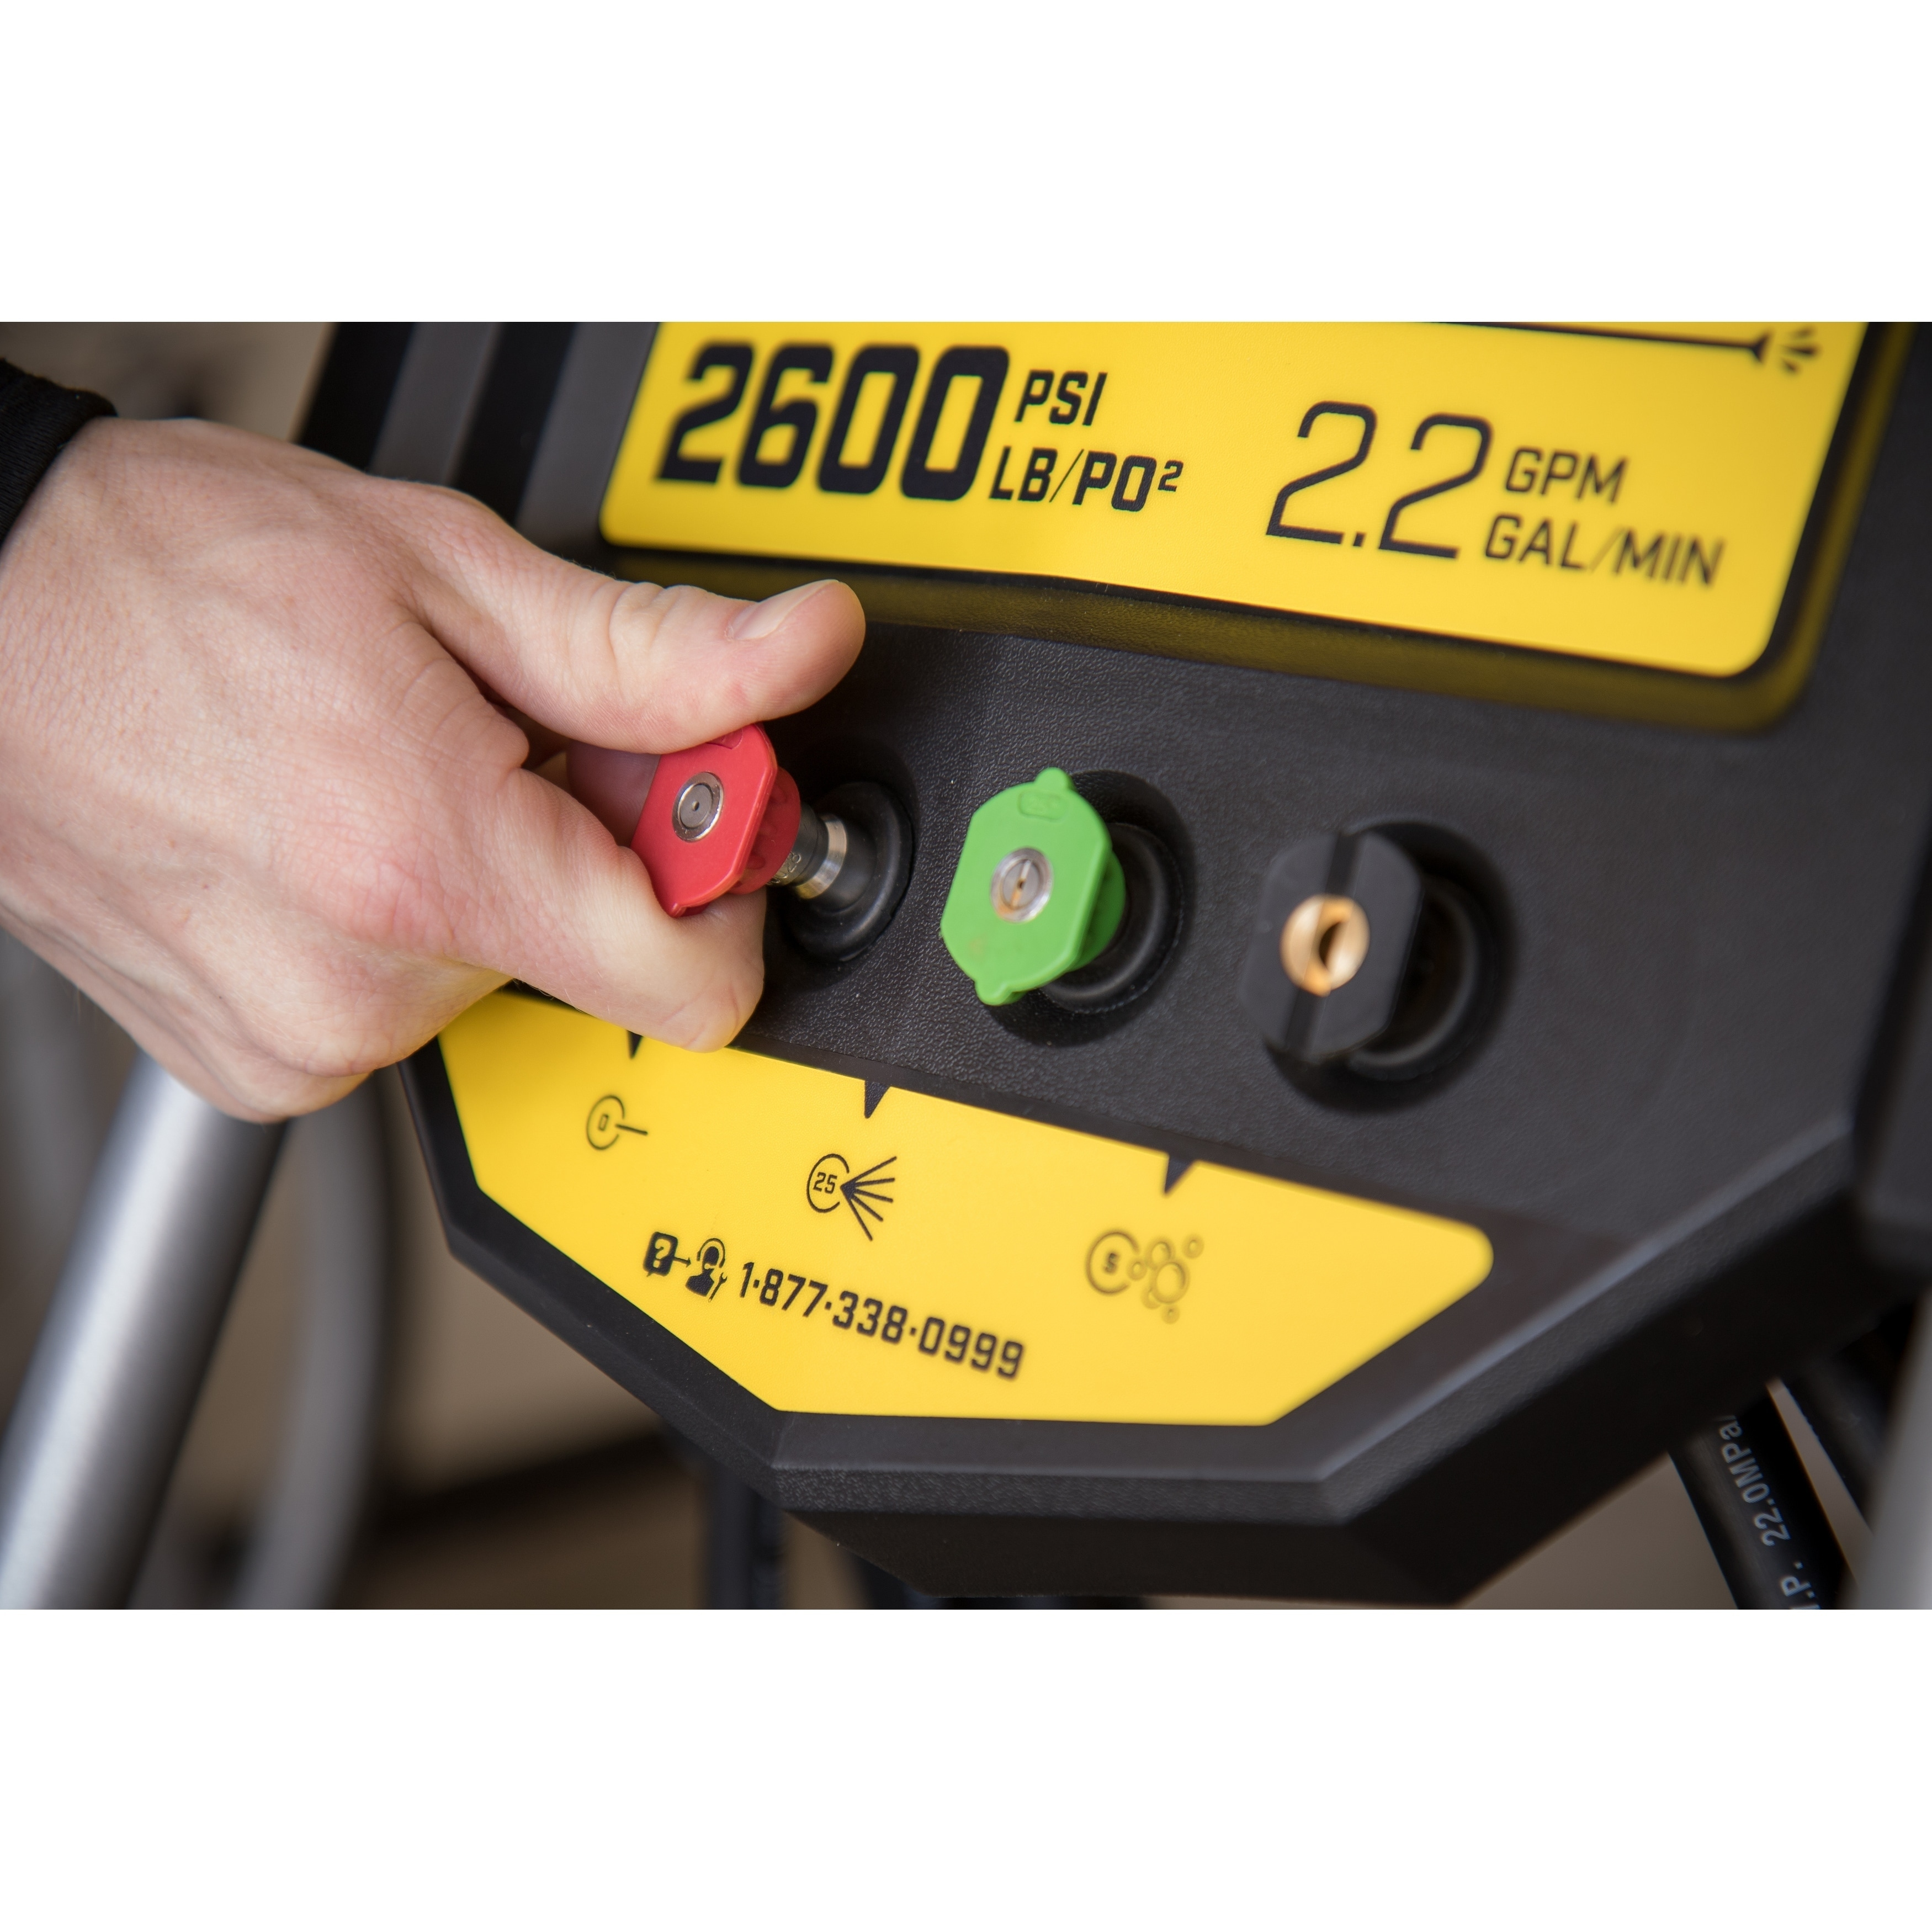 Champion 2600-PSI 2.2-GPM Dolly-Style Gas Pressure Washer...